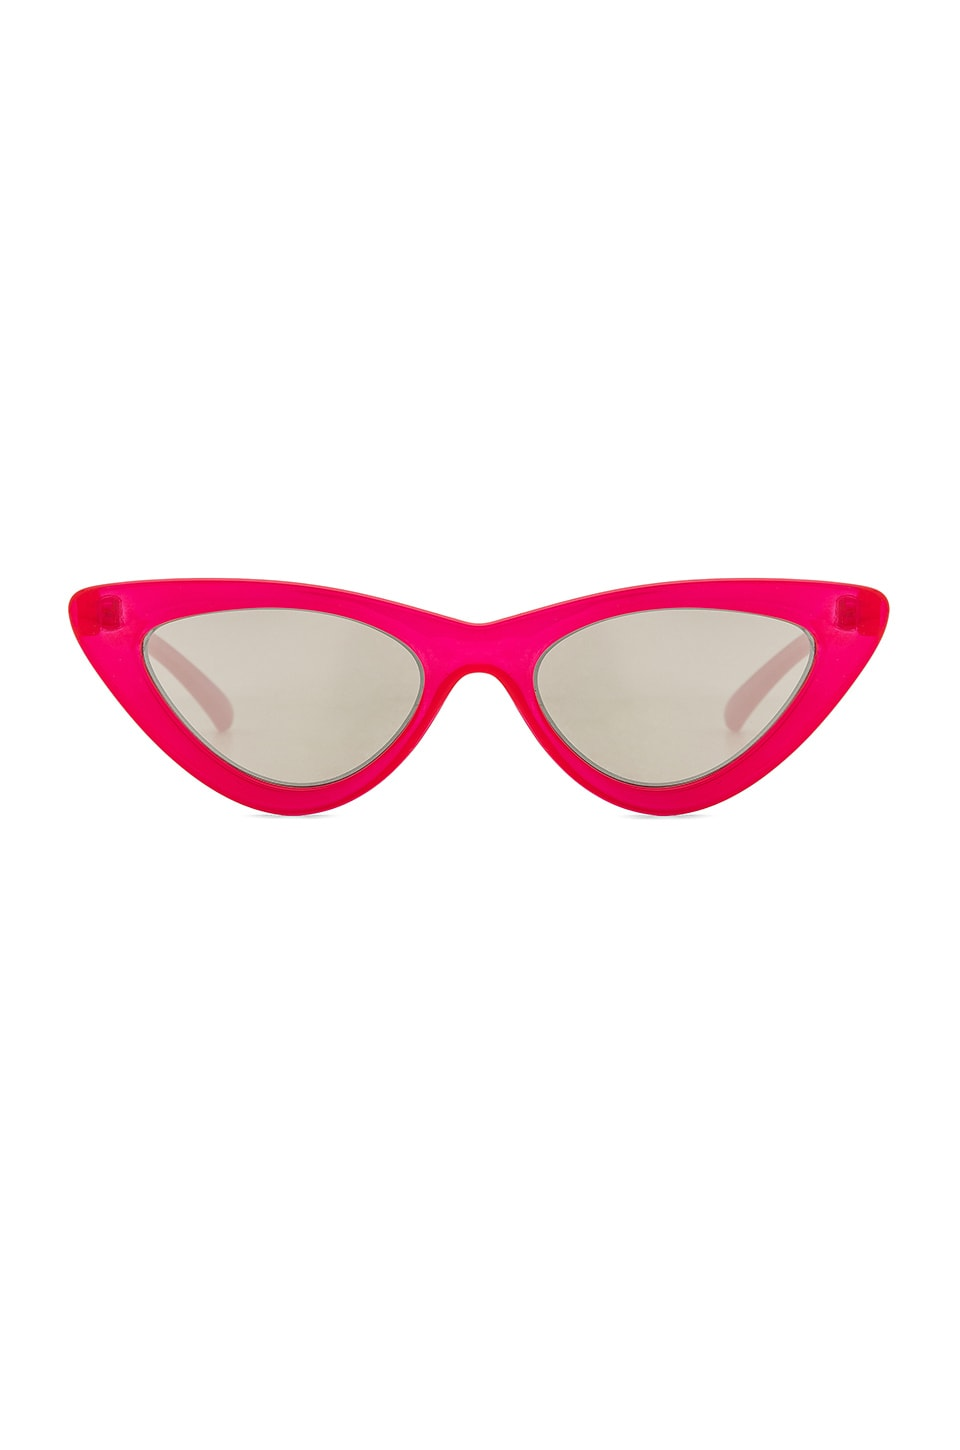 Le Specs x Adam Selman The Last Lolita in Opaque Red & Silver Mirror